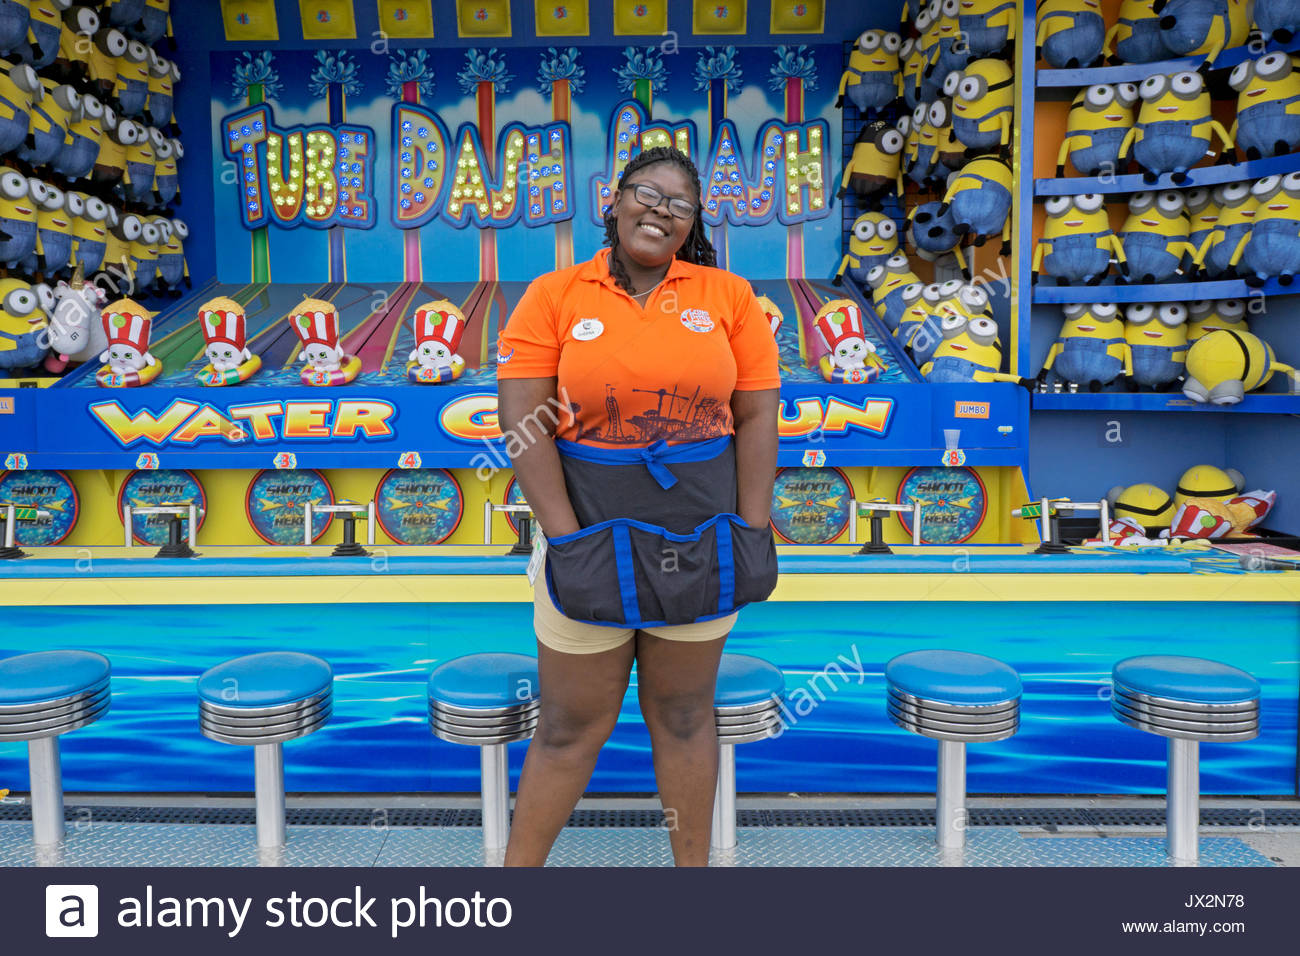 A college girl at her summer job working at an arcade game on the Coney Island boardwalk in Brooklyn, New York. - Stock Image